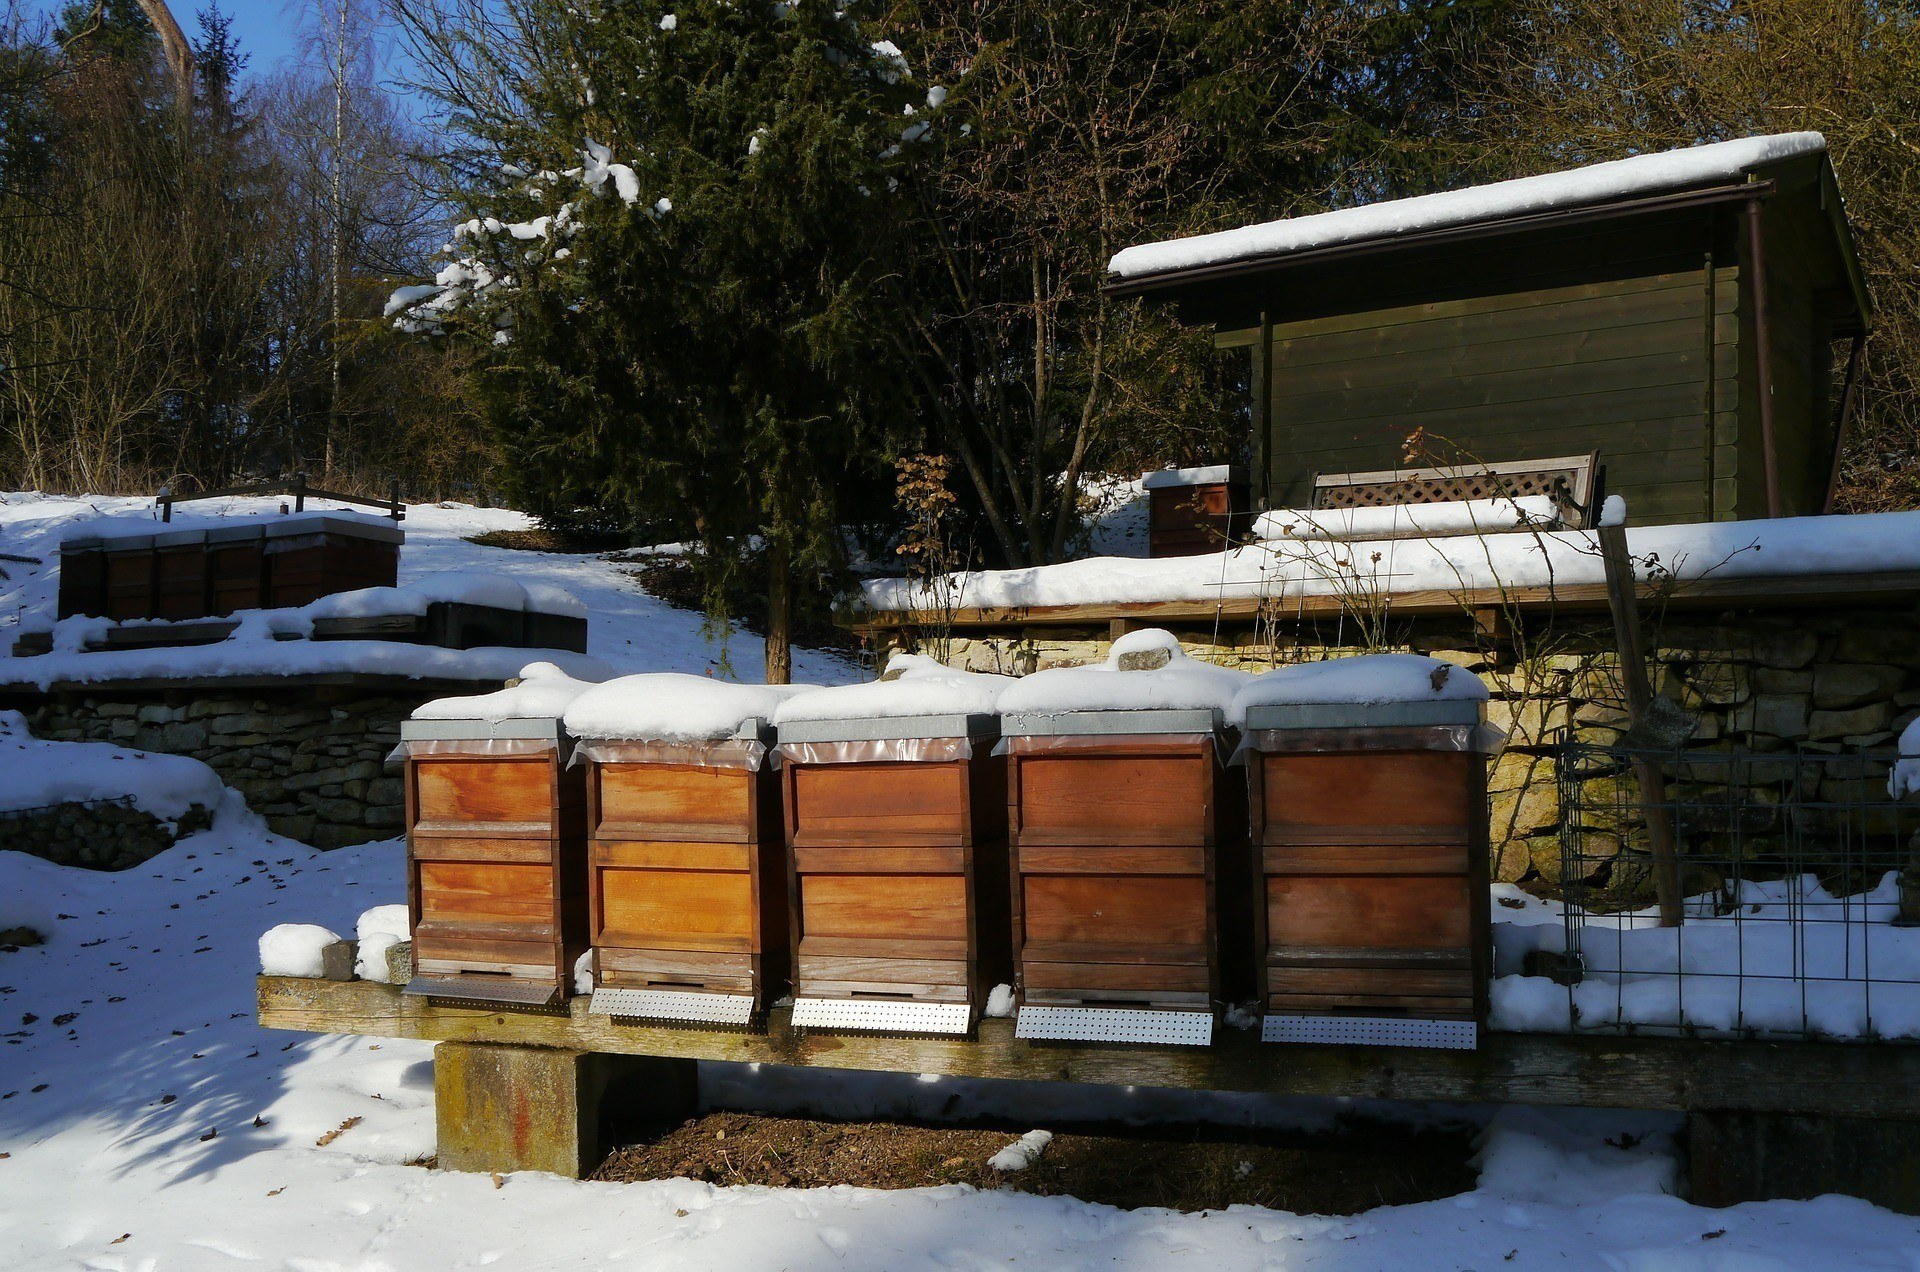 Adopt-A-Hive Update Letter - October 2019 - Bear Country Bees